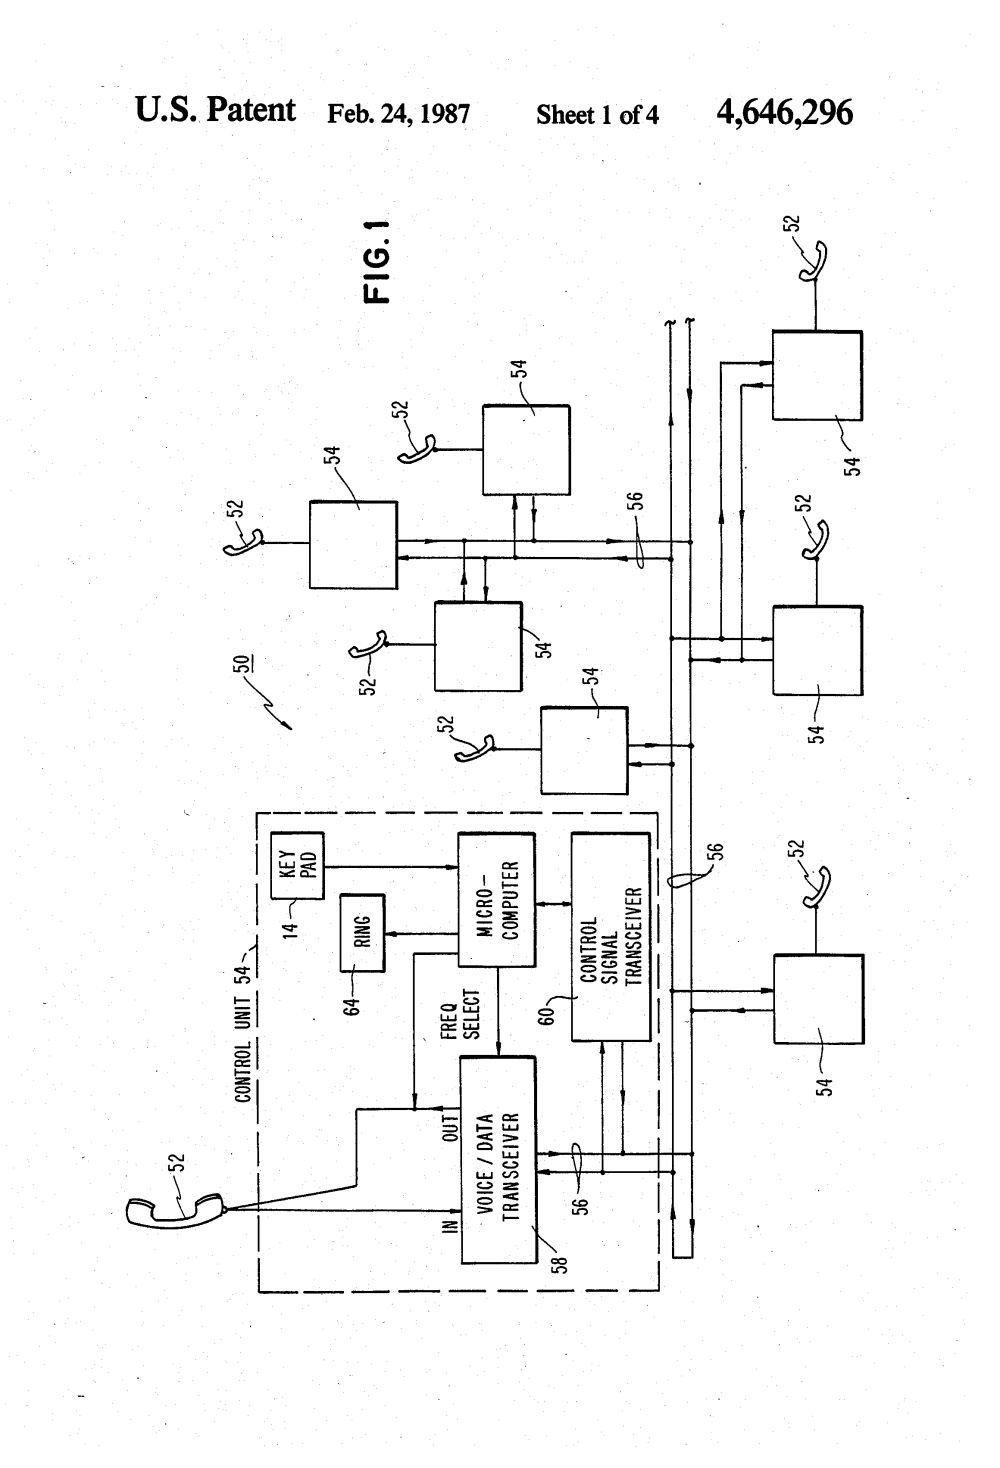 medium resolution of patent us4646296 distributed telephone system google patents wiring an multiple outlet including patent us7522714 telephone outlet